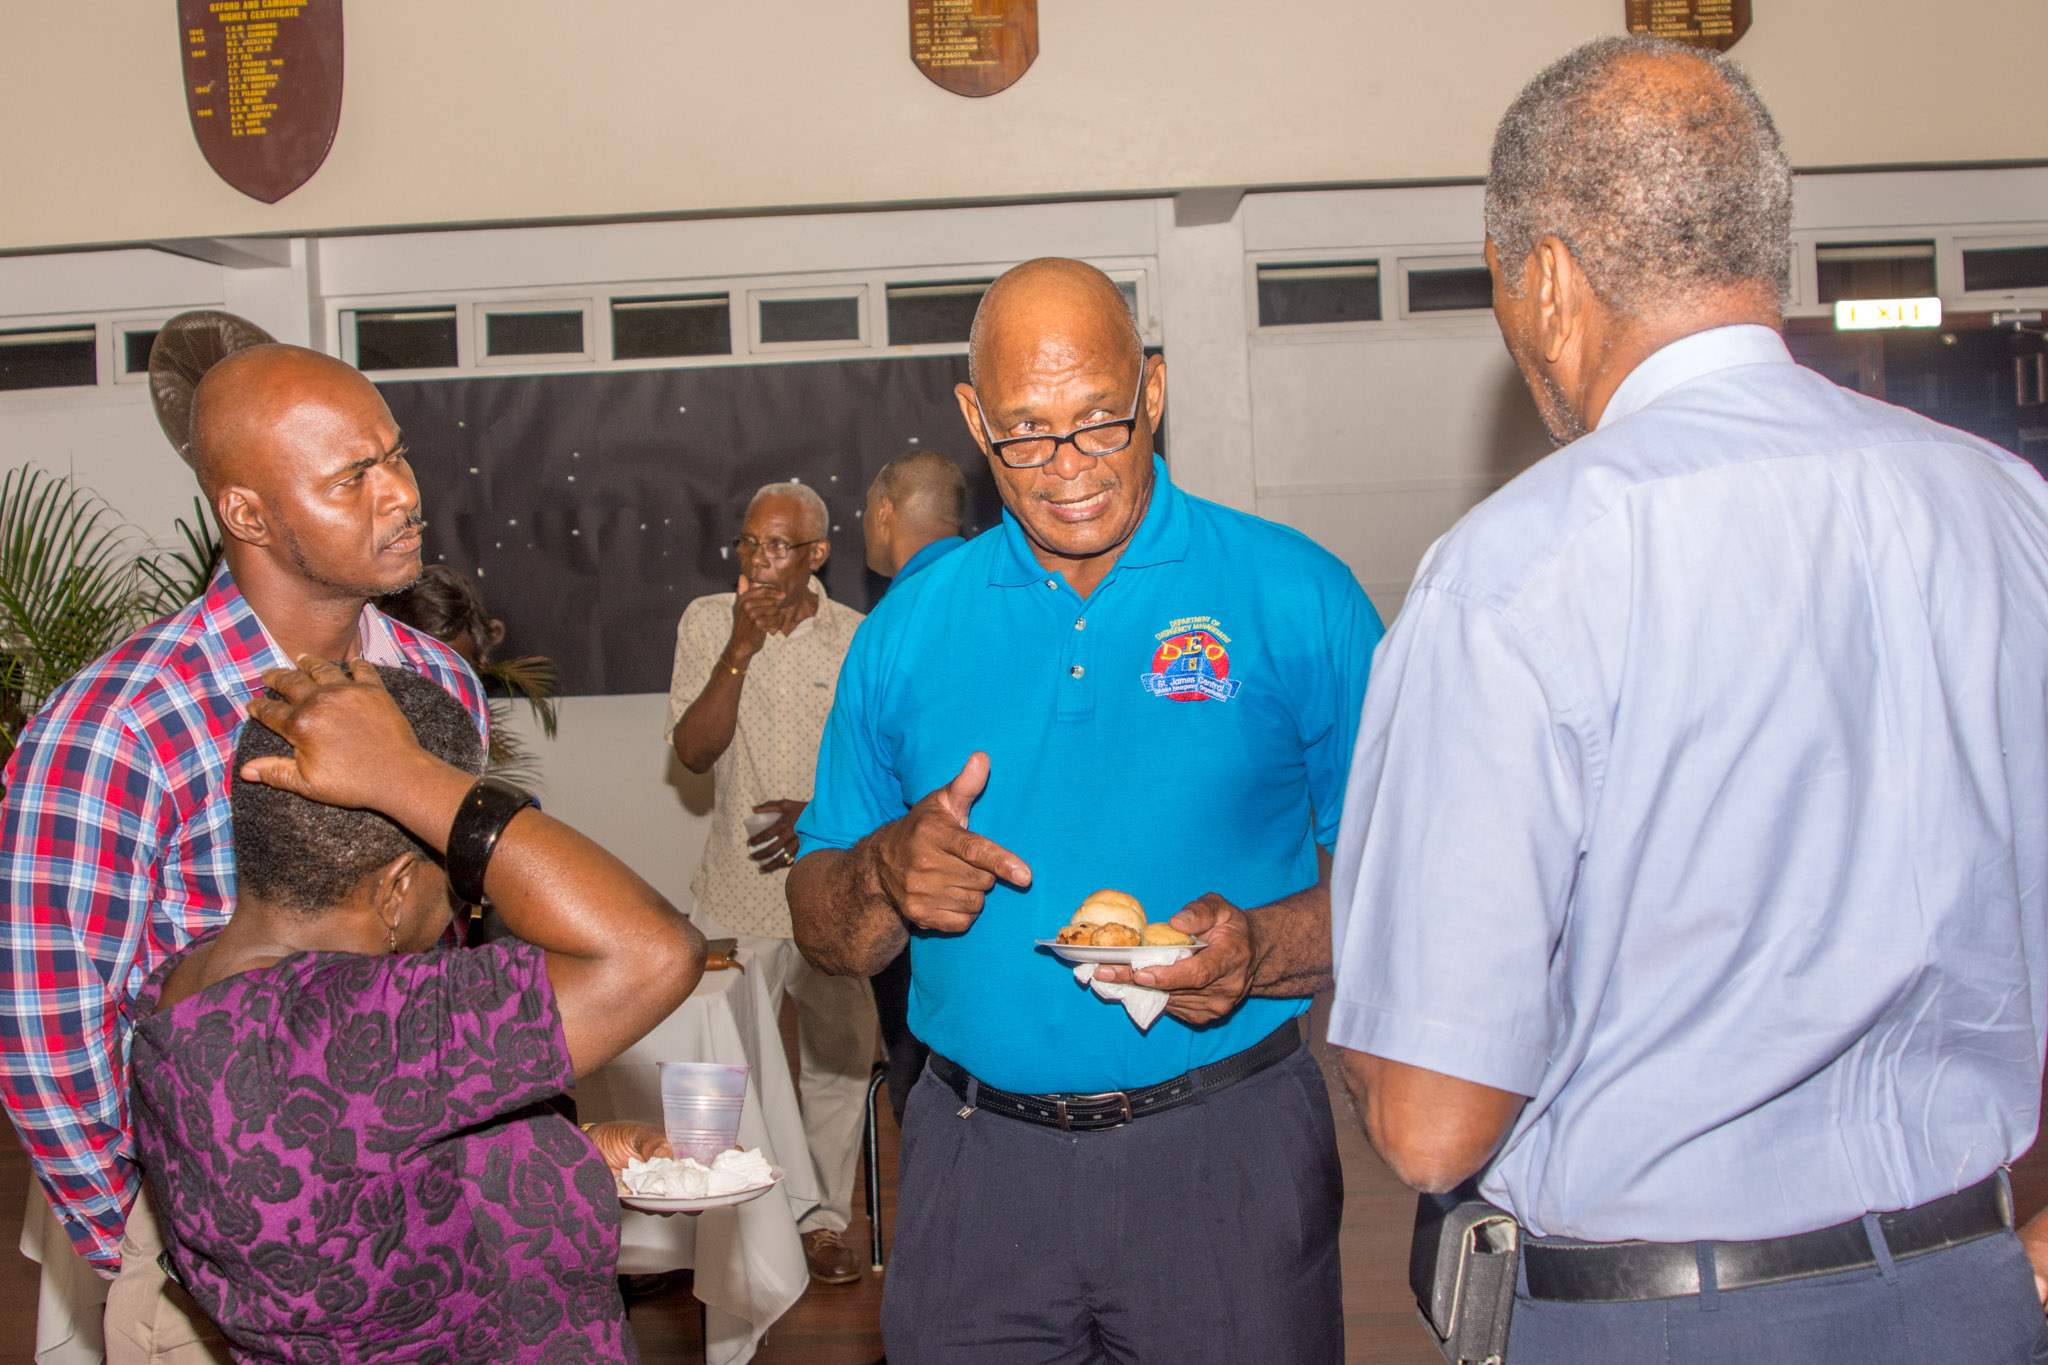 Chairman Brooks mingles with invited guests